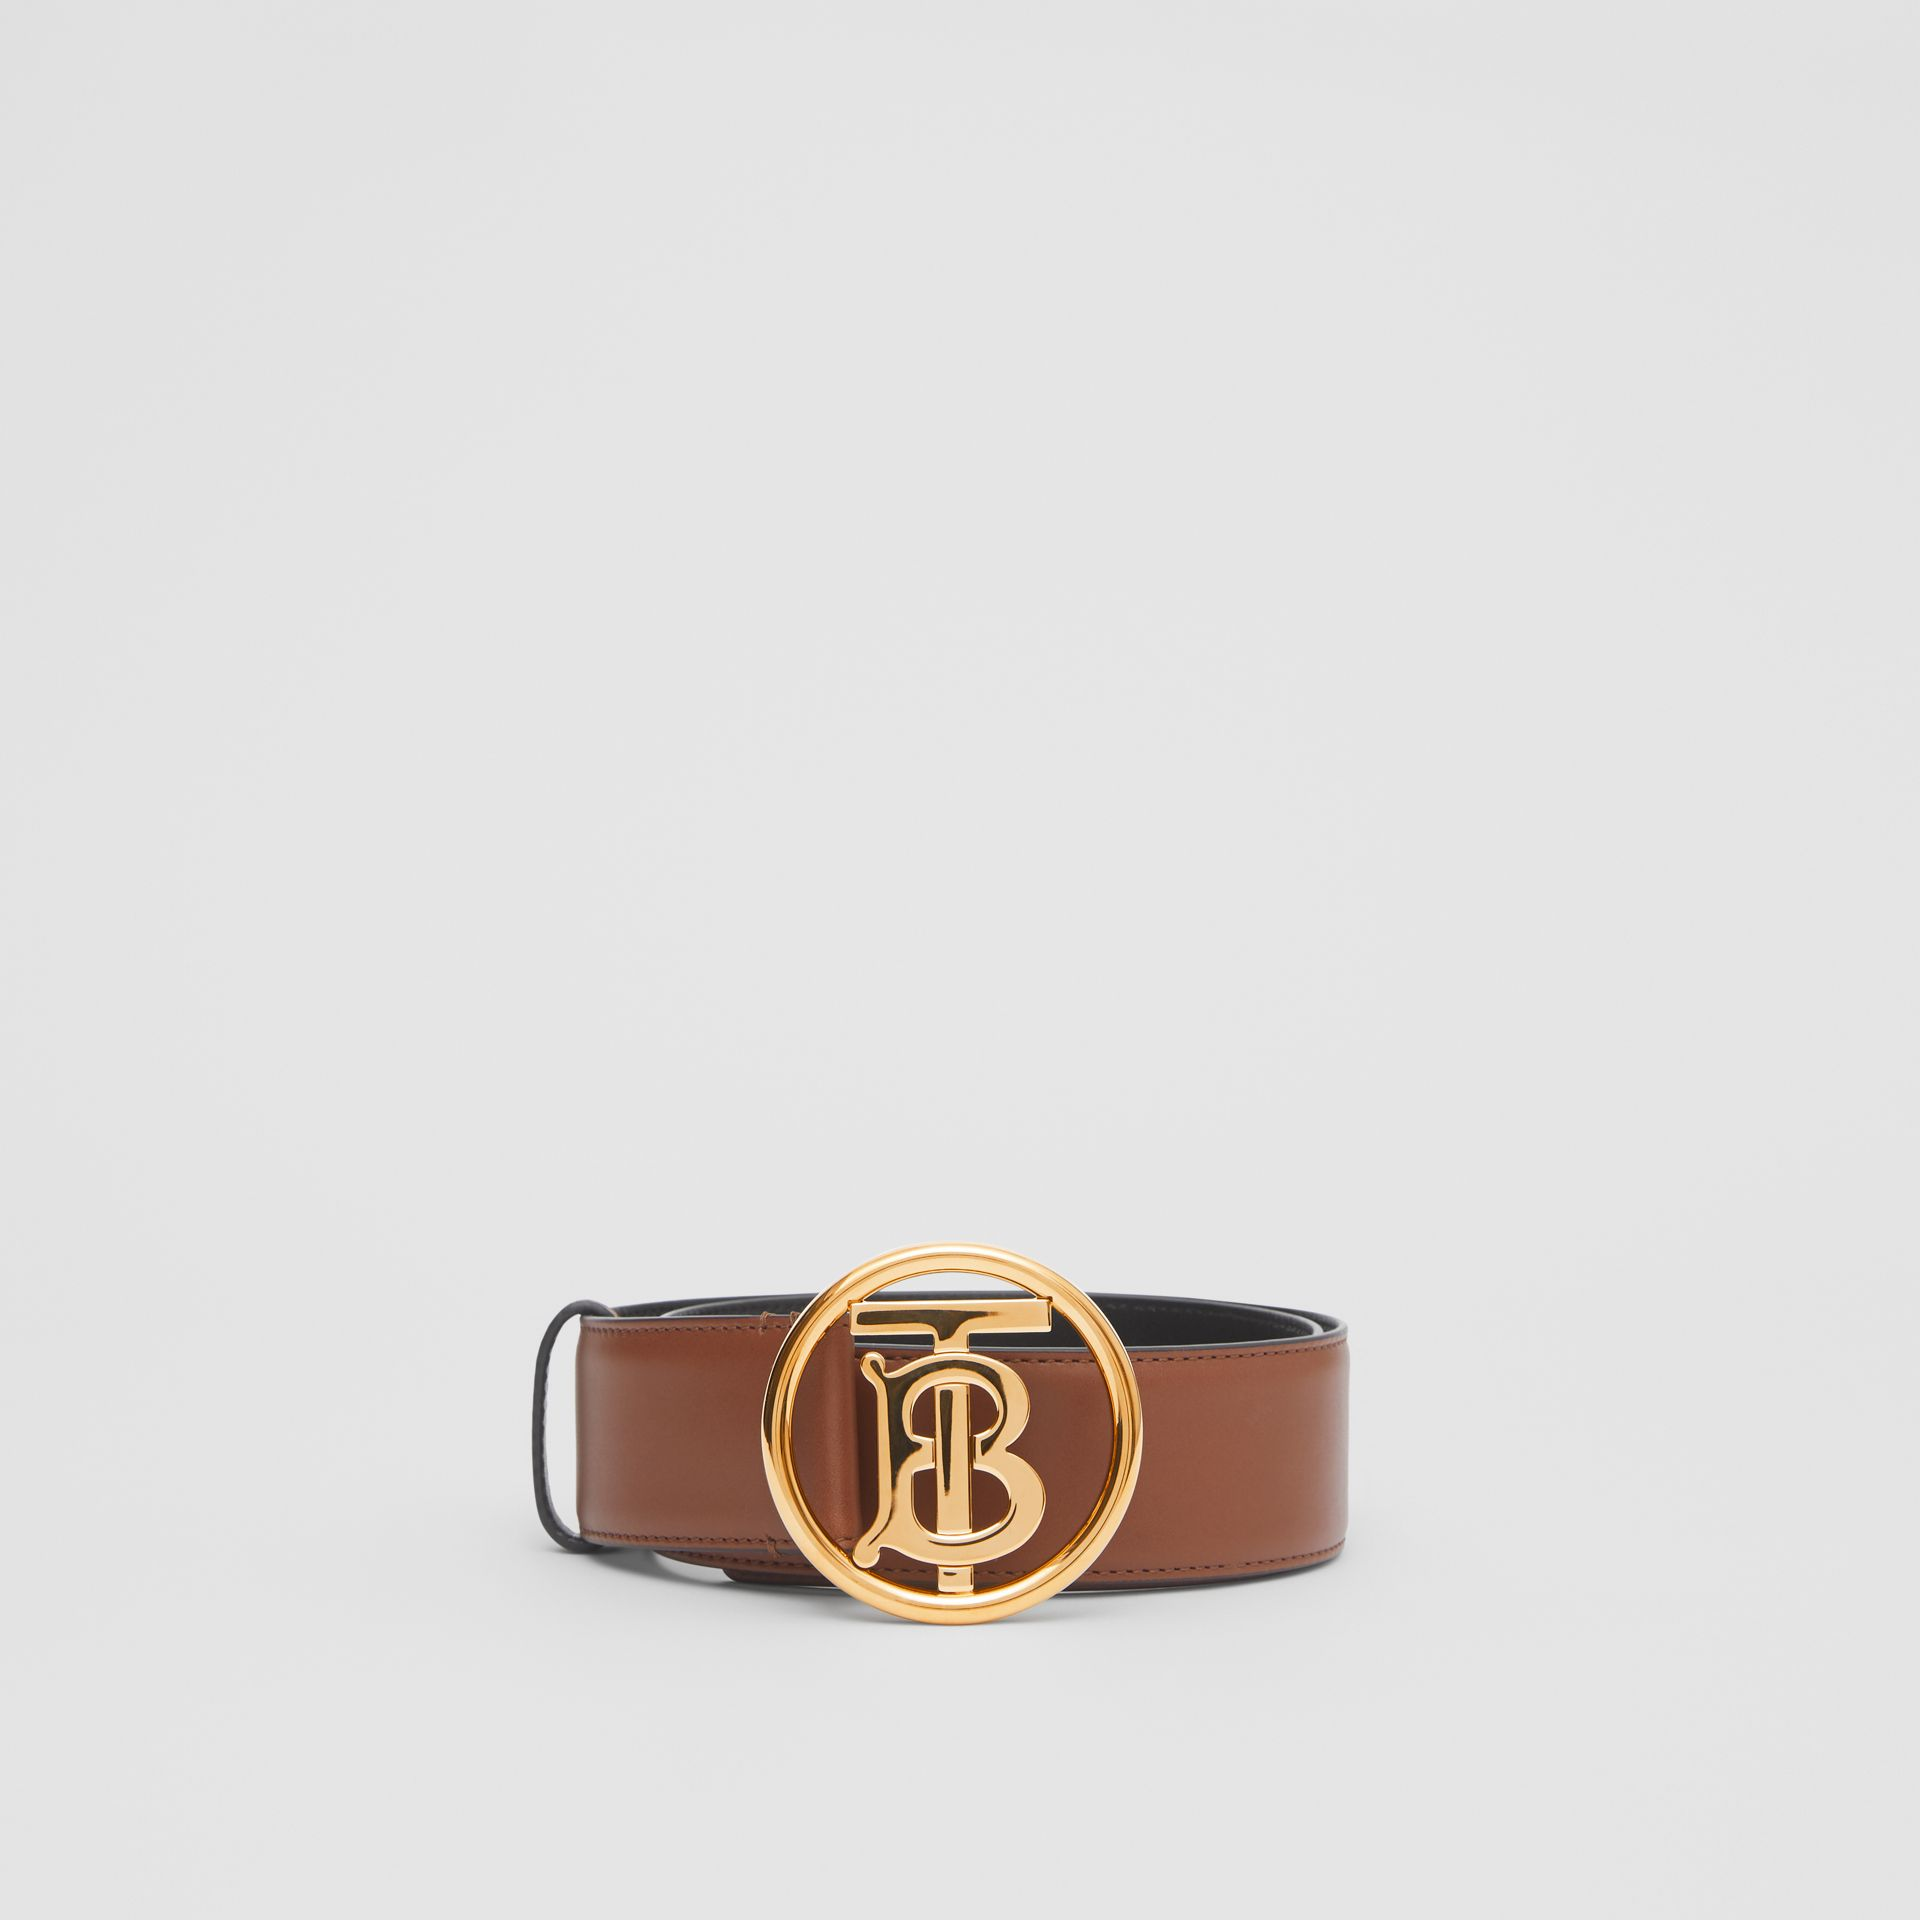 Monogram Motif Leather Belt in Tan/antique Dark Brass - Women | Burberry Hong Kong S.A.R - gallery image 2